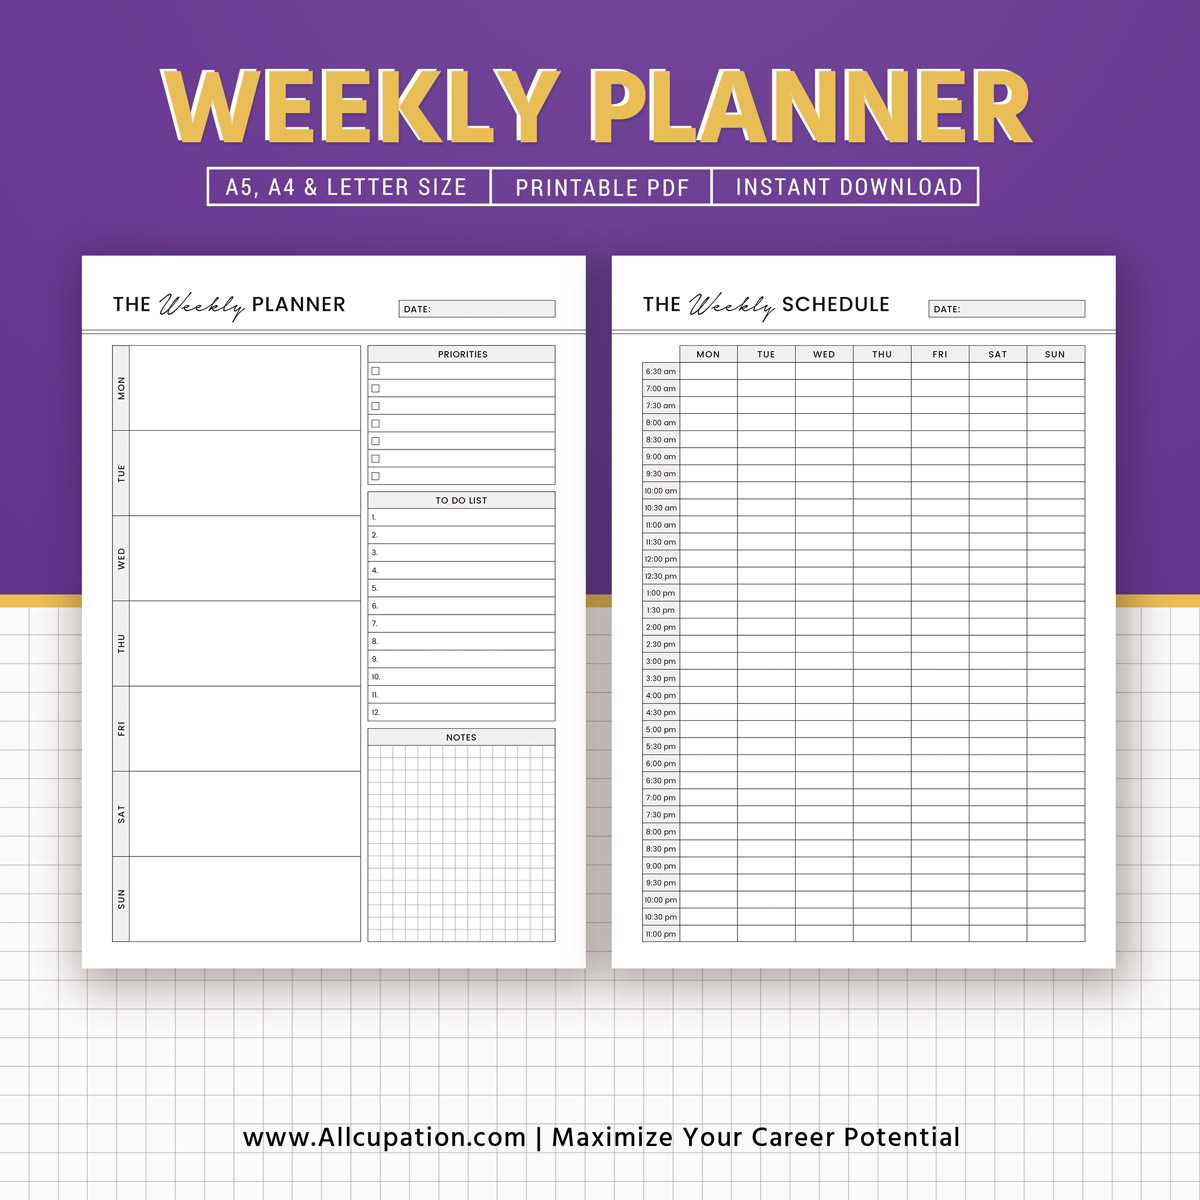 It's just an image of Accomplished A5 Planner Printables